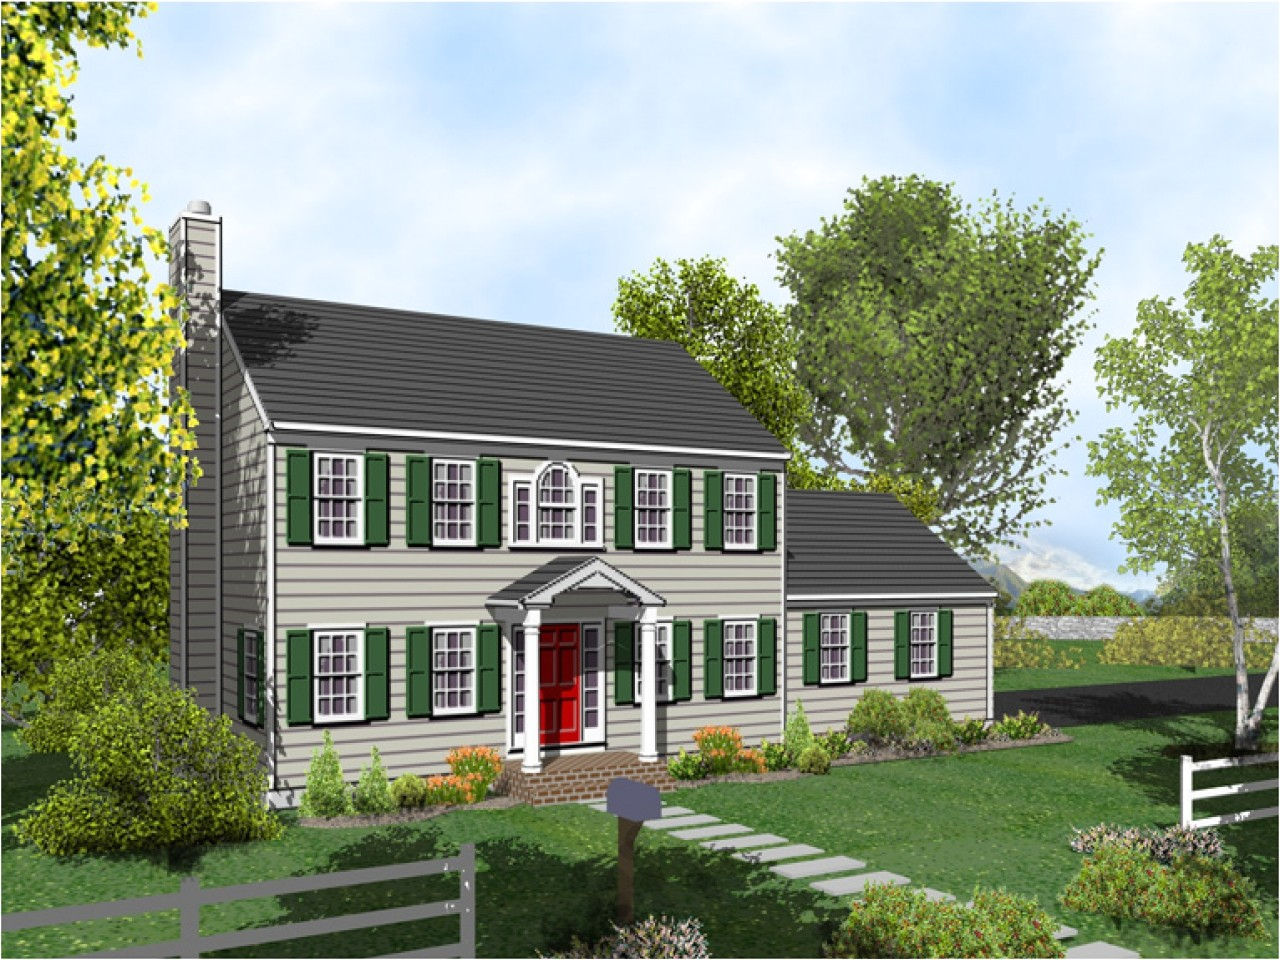 81c6105048b7b9b0 colonial house plans with porches georgian colonial house plans